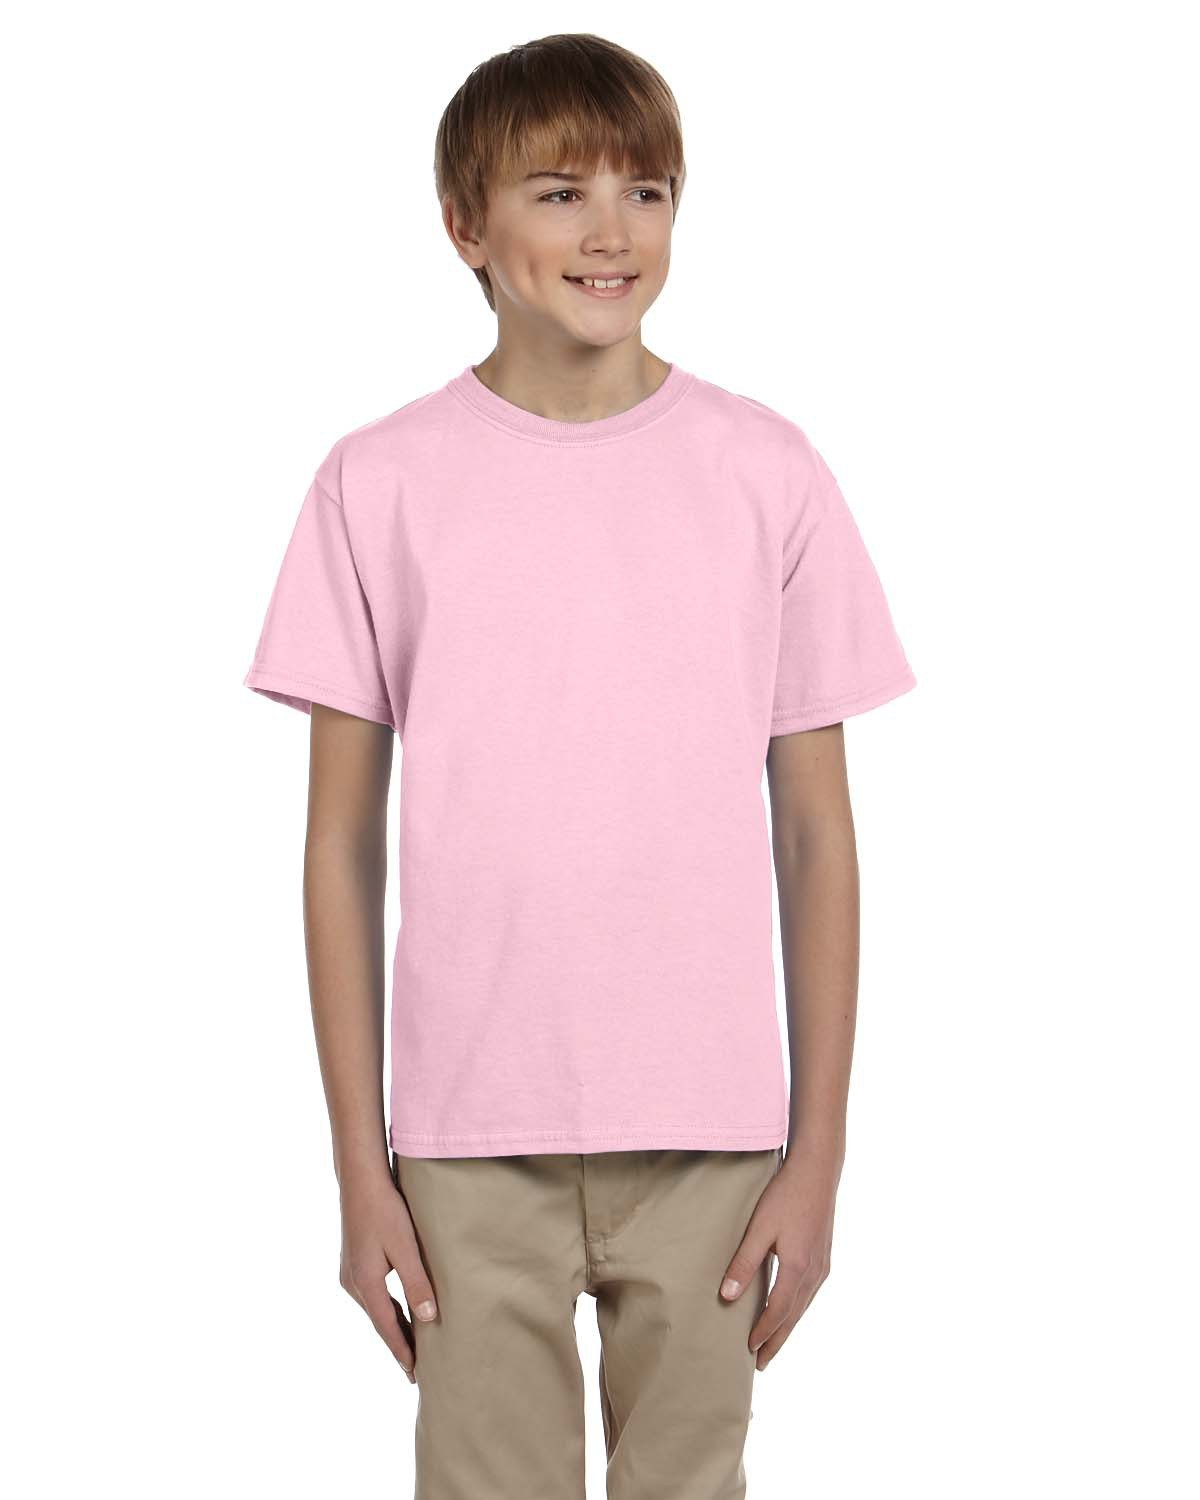 Hanes Youth 50/50 T-Shirt PALE PINK